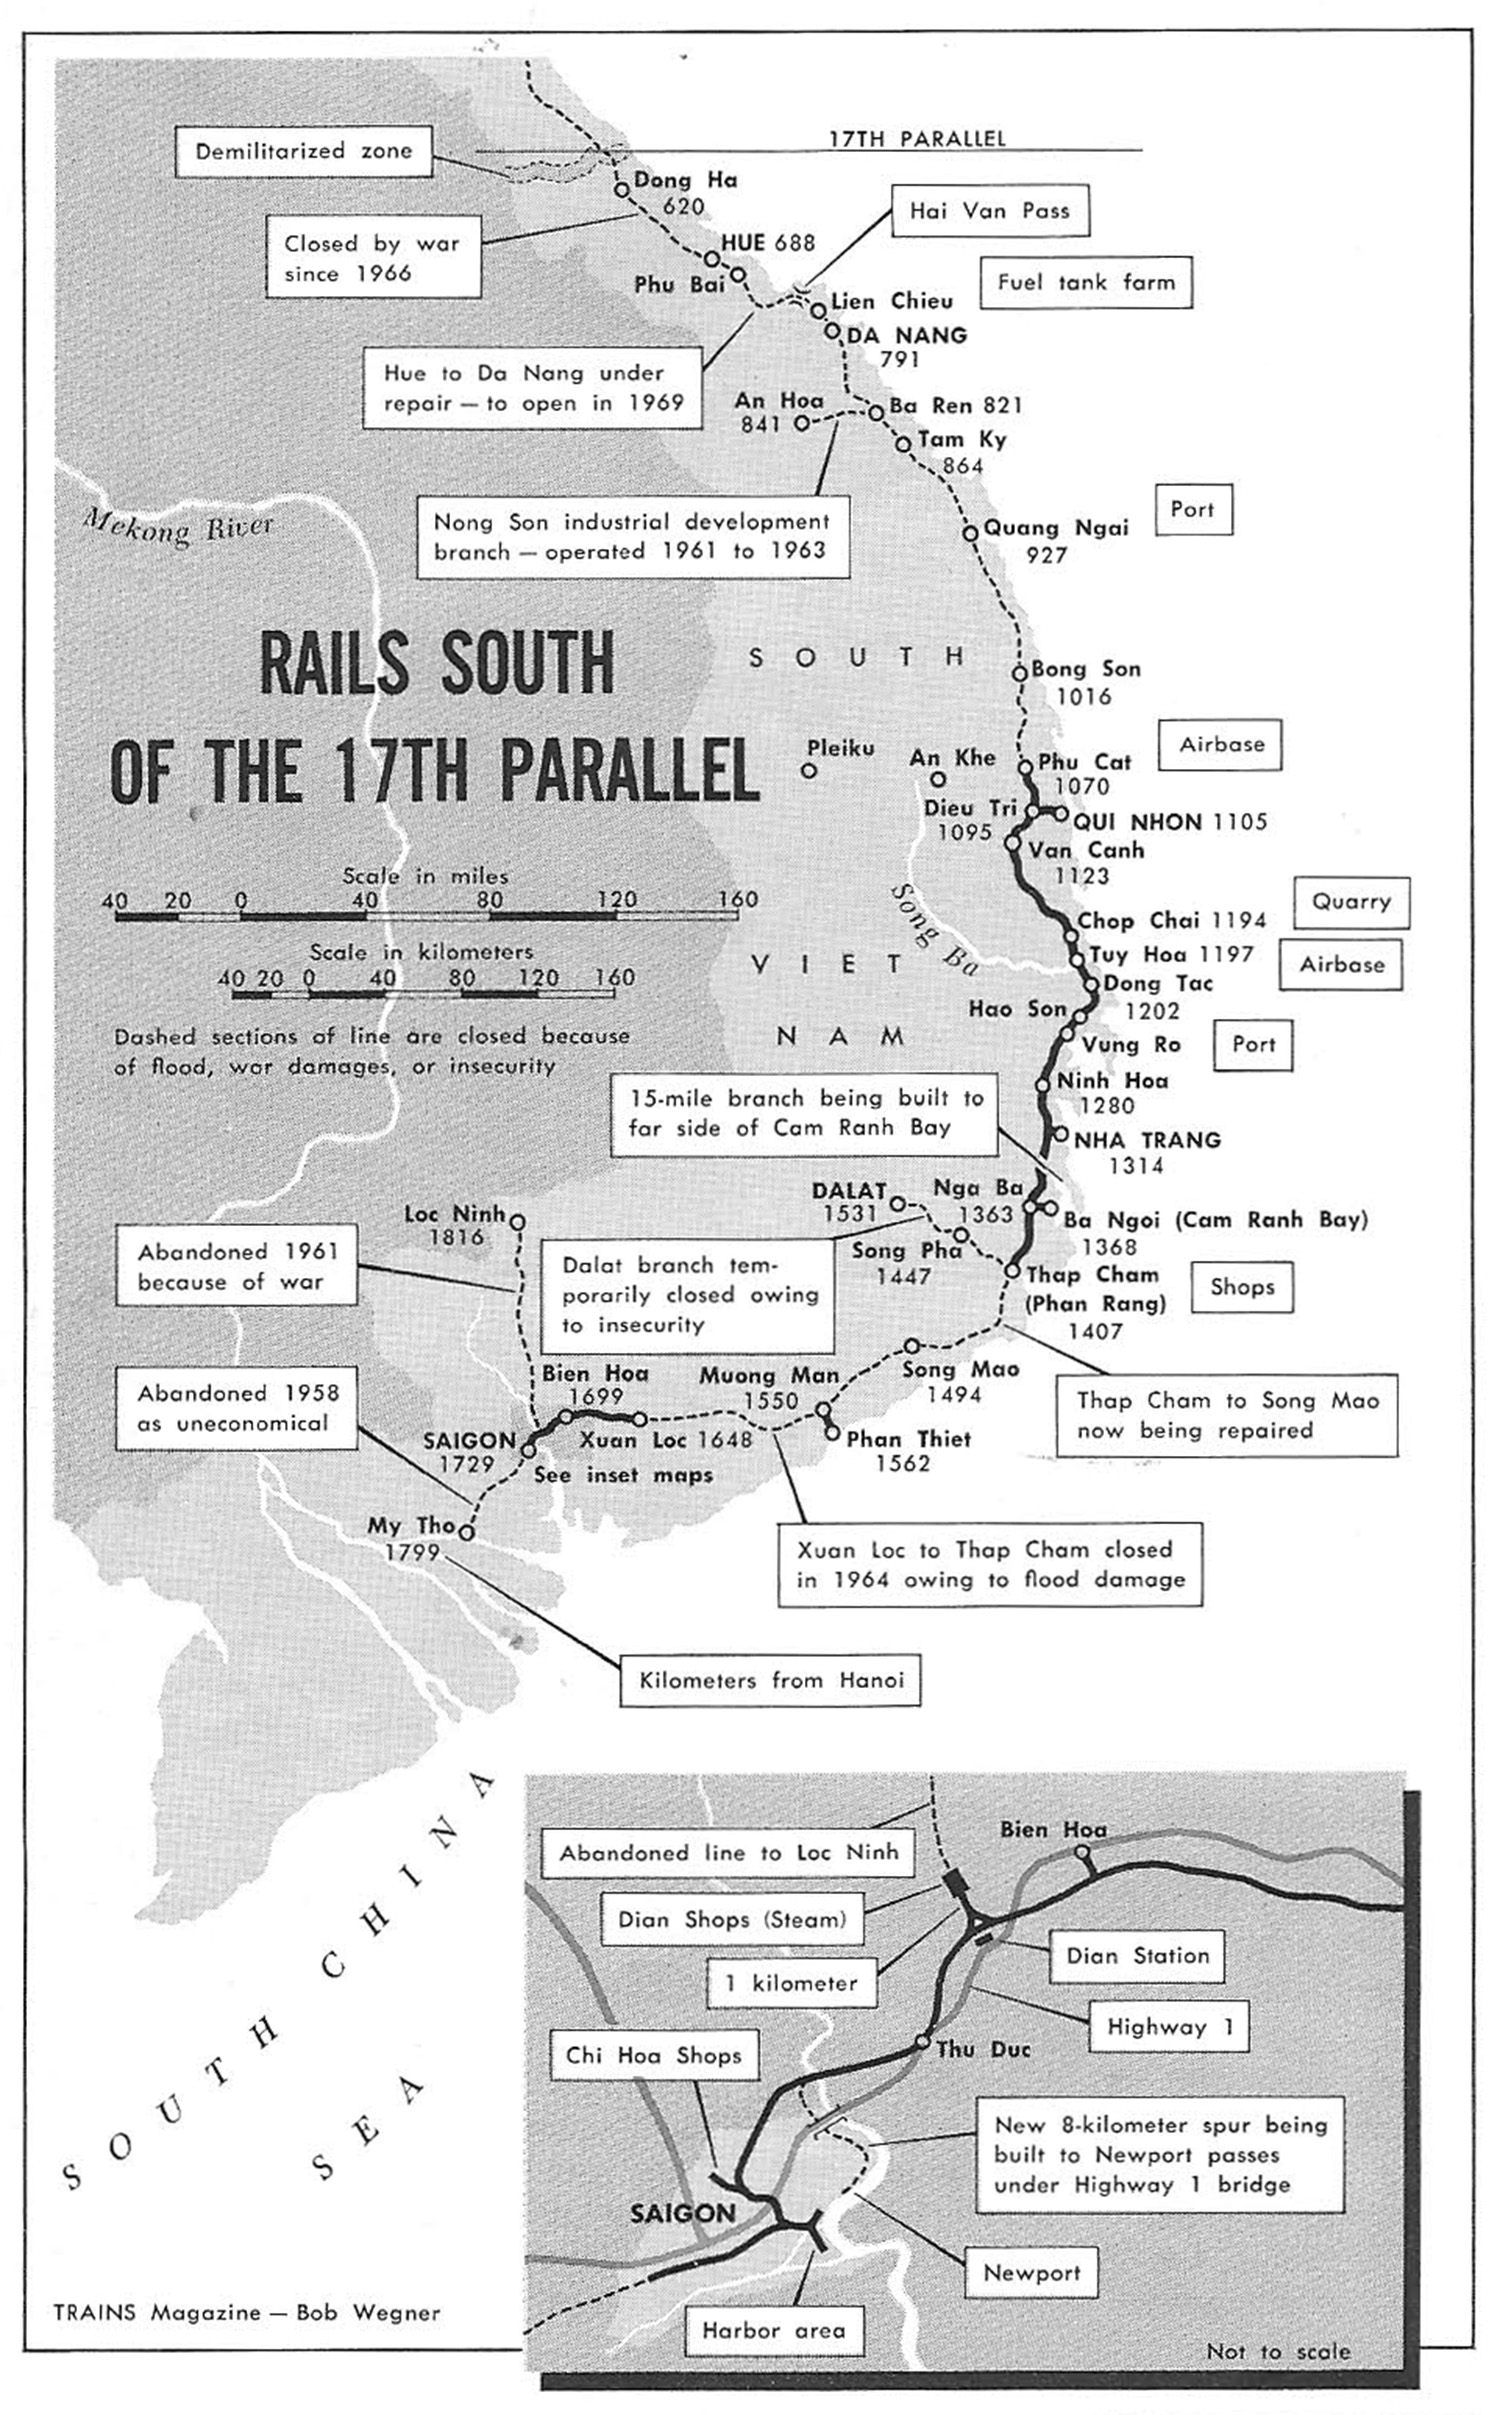 Historic Vietnam Tim Dolings Heritage Portal Renault Remote Starter Diagram By The End Of 1964 More Damage Had Been Inflicted On South Vietnamese Railway System In A Two Month Period That 15 Years World War Ii And